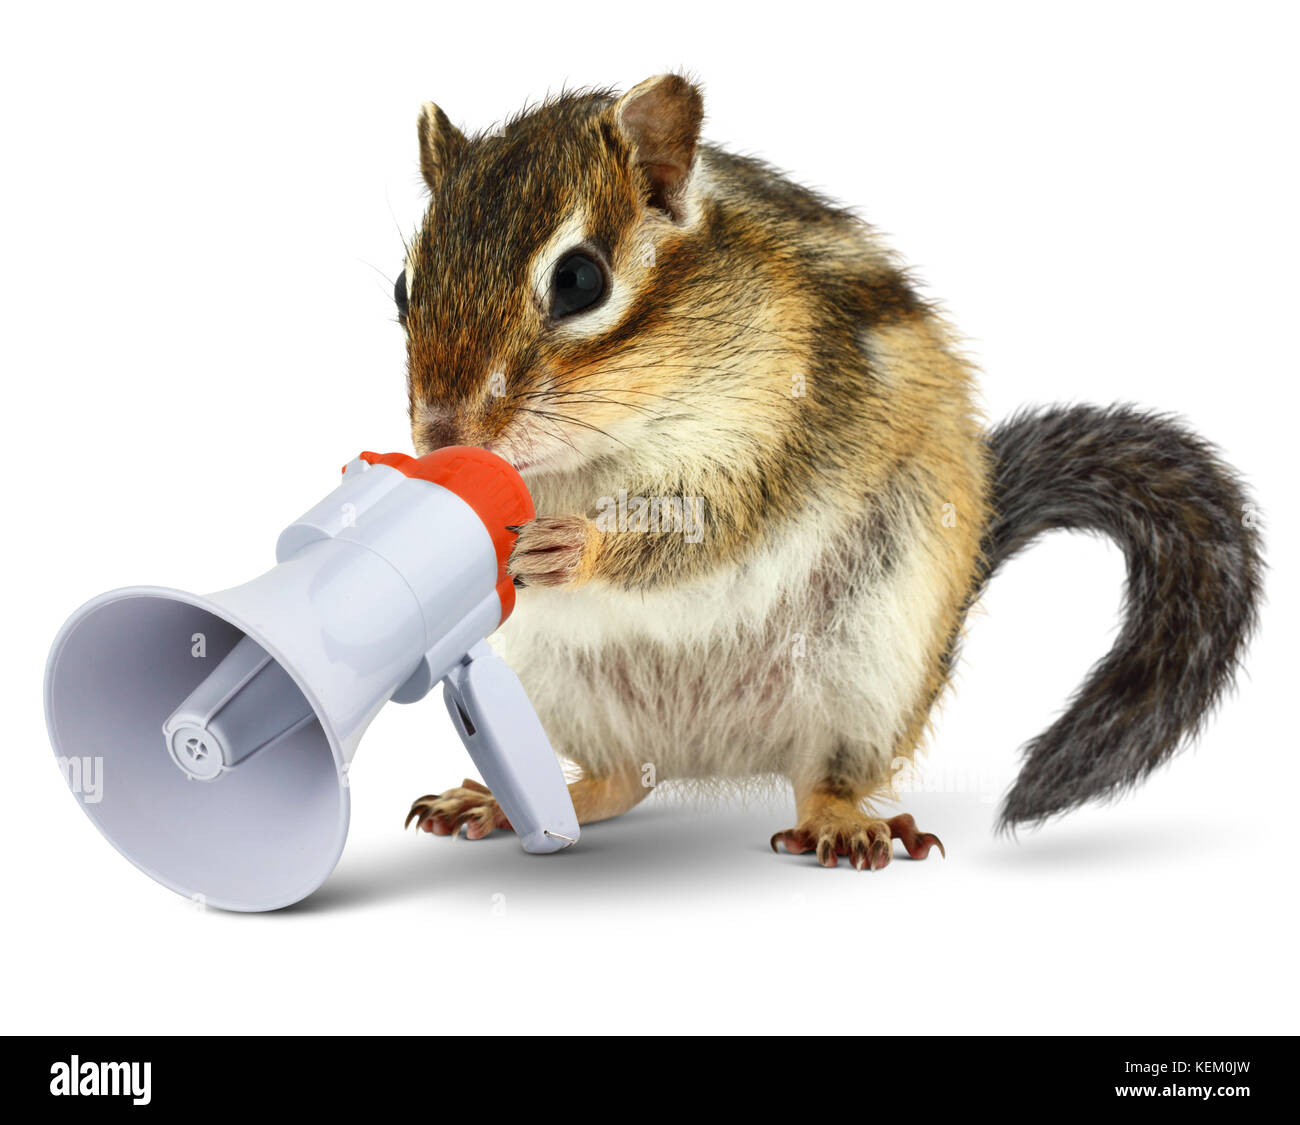 Funny animal chipmunk talking into megaphone, isolated on white - Stock Image